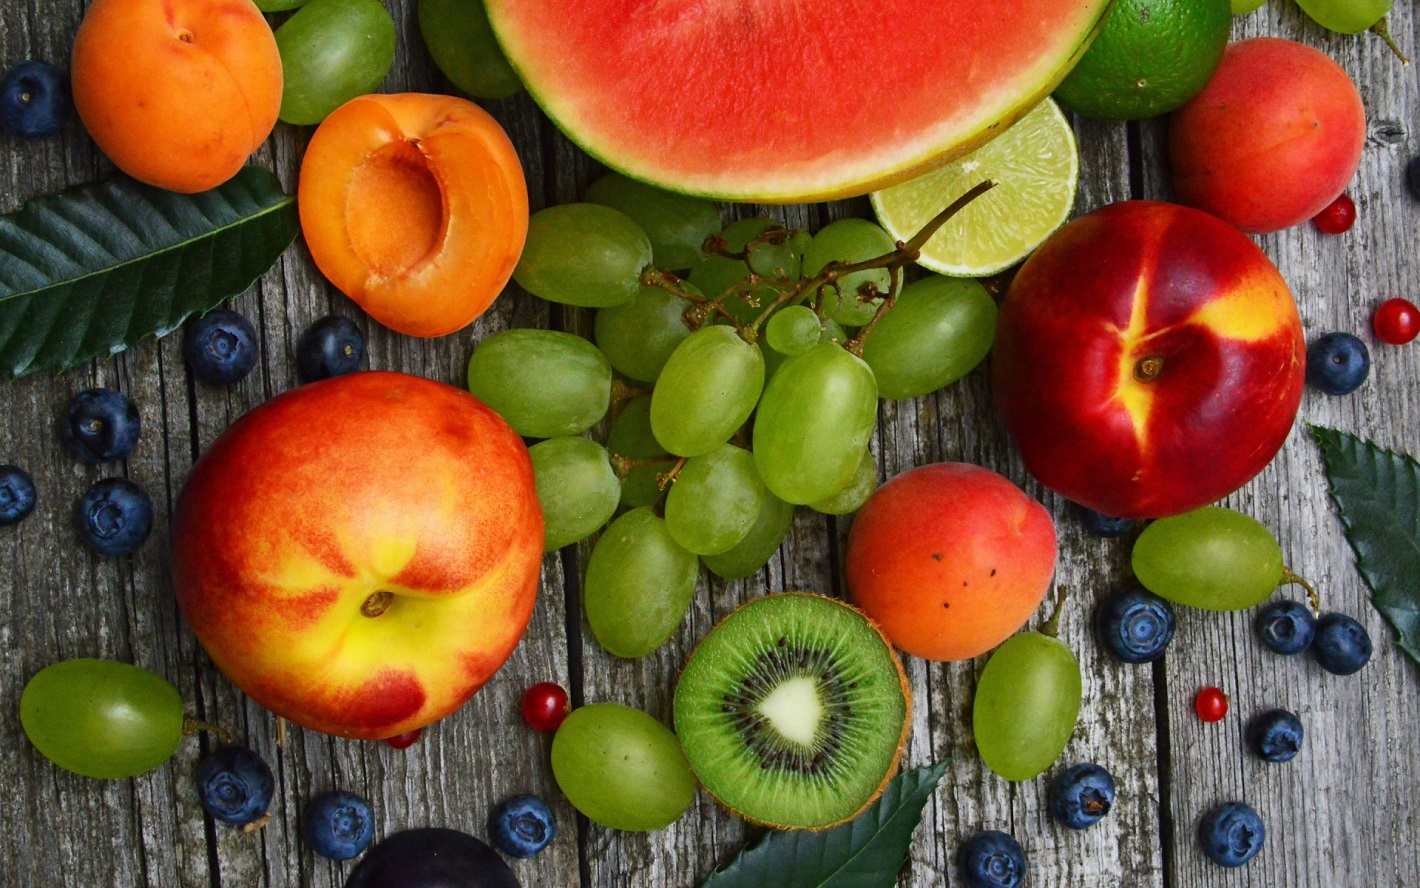 Informations nutritionnelles des fruits